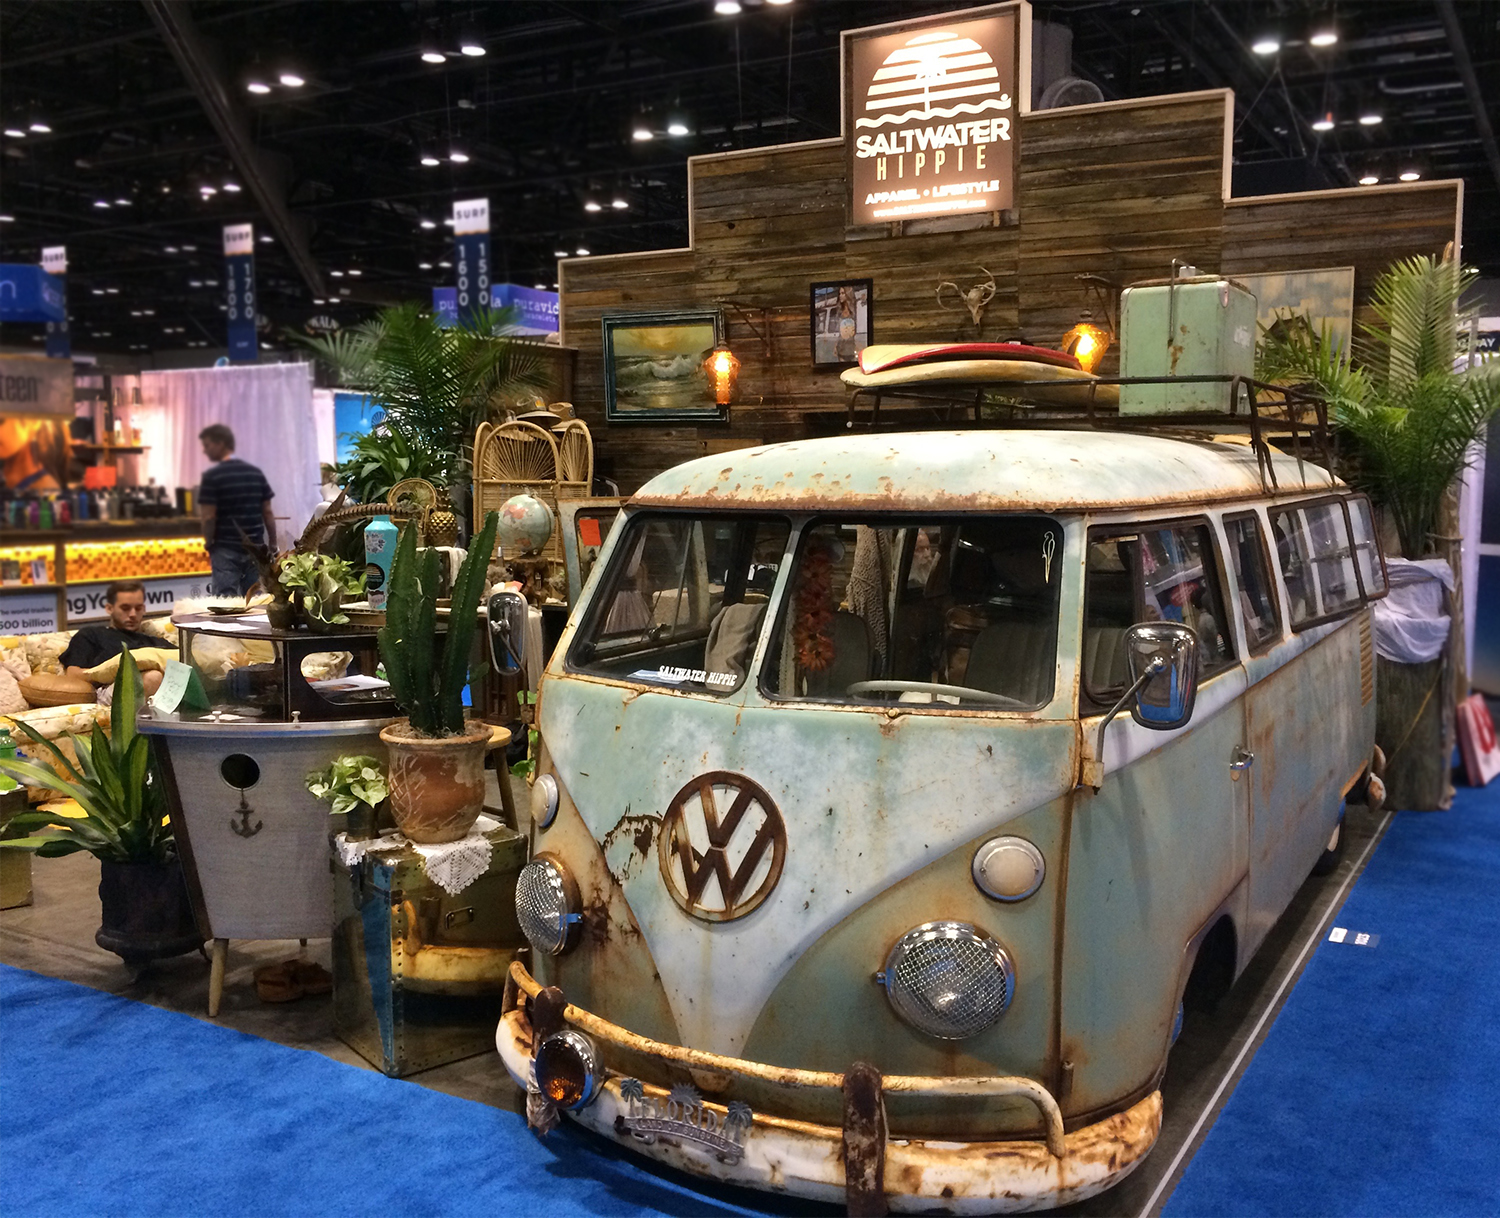 Saltwater hippy kicked their booth up a lot with tons of vintage items all around in addition to their old rusty bus that everyone loves.